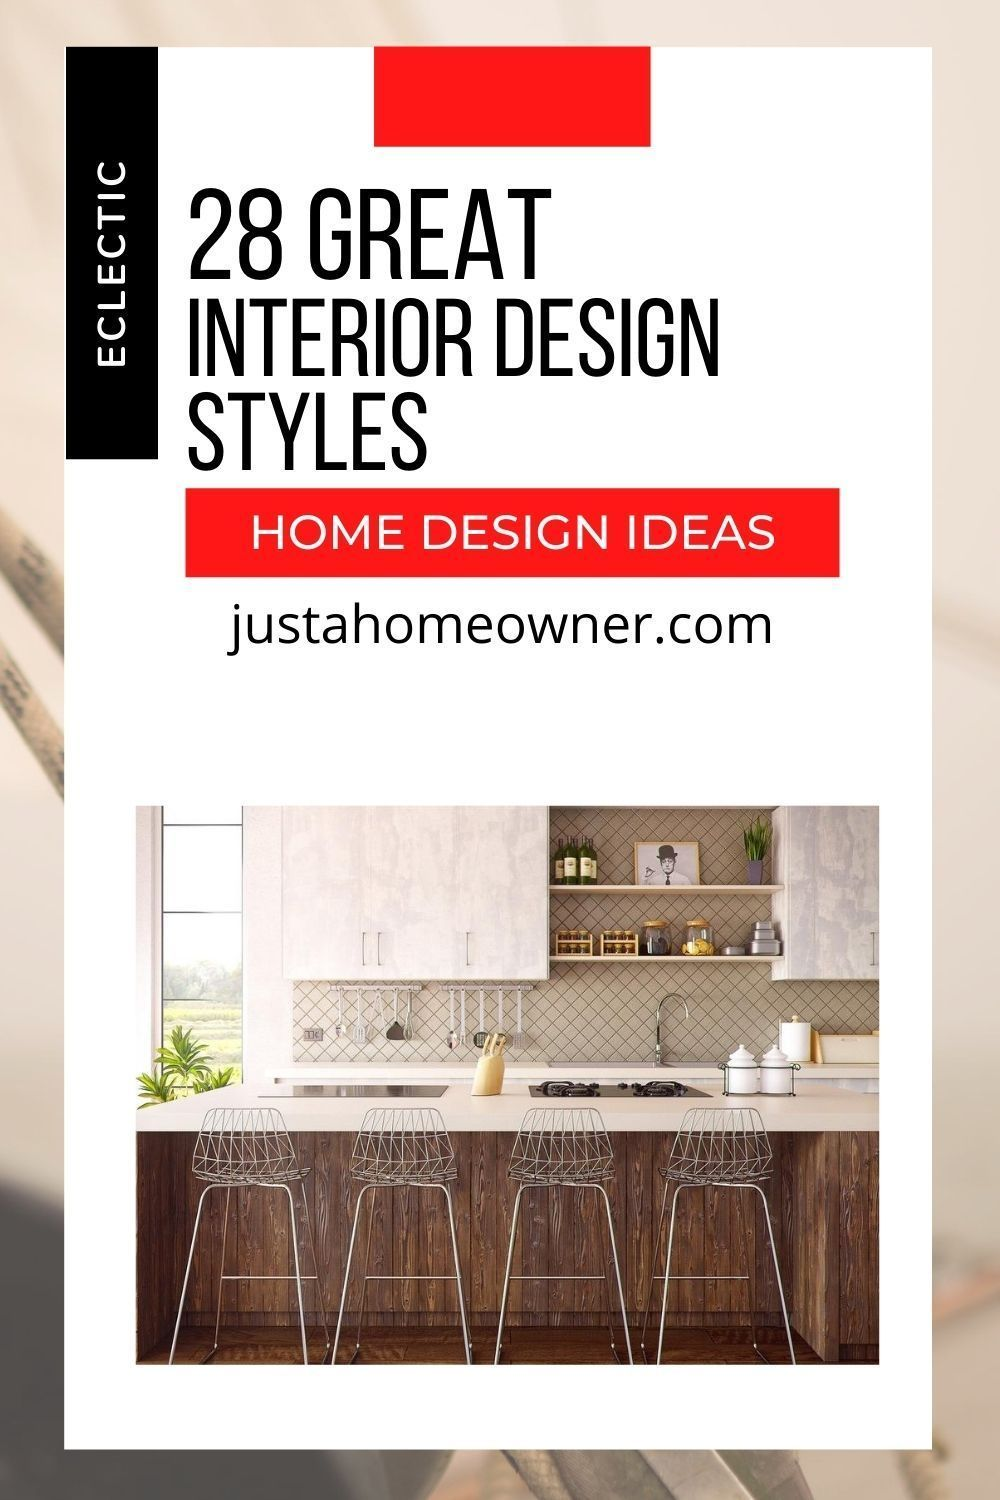 Are you confused how to decorate your home?  I've got the 28 best interior design styles so that you can find something perfect for your home décor.  Inspiring photos and home décor tips for each design style.  From Bohemian to Rustic design, they're all great.  Check it out and find a unique design perfect for you! #homedecor #homedesign #interiordesign #interiorideas #interiorhouse #homedesignideas #kitchendesign #bathroomdesign